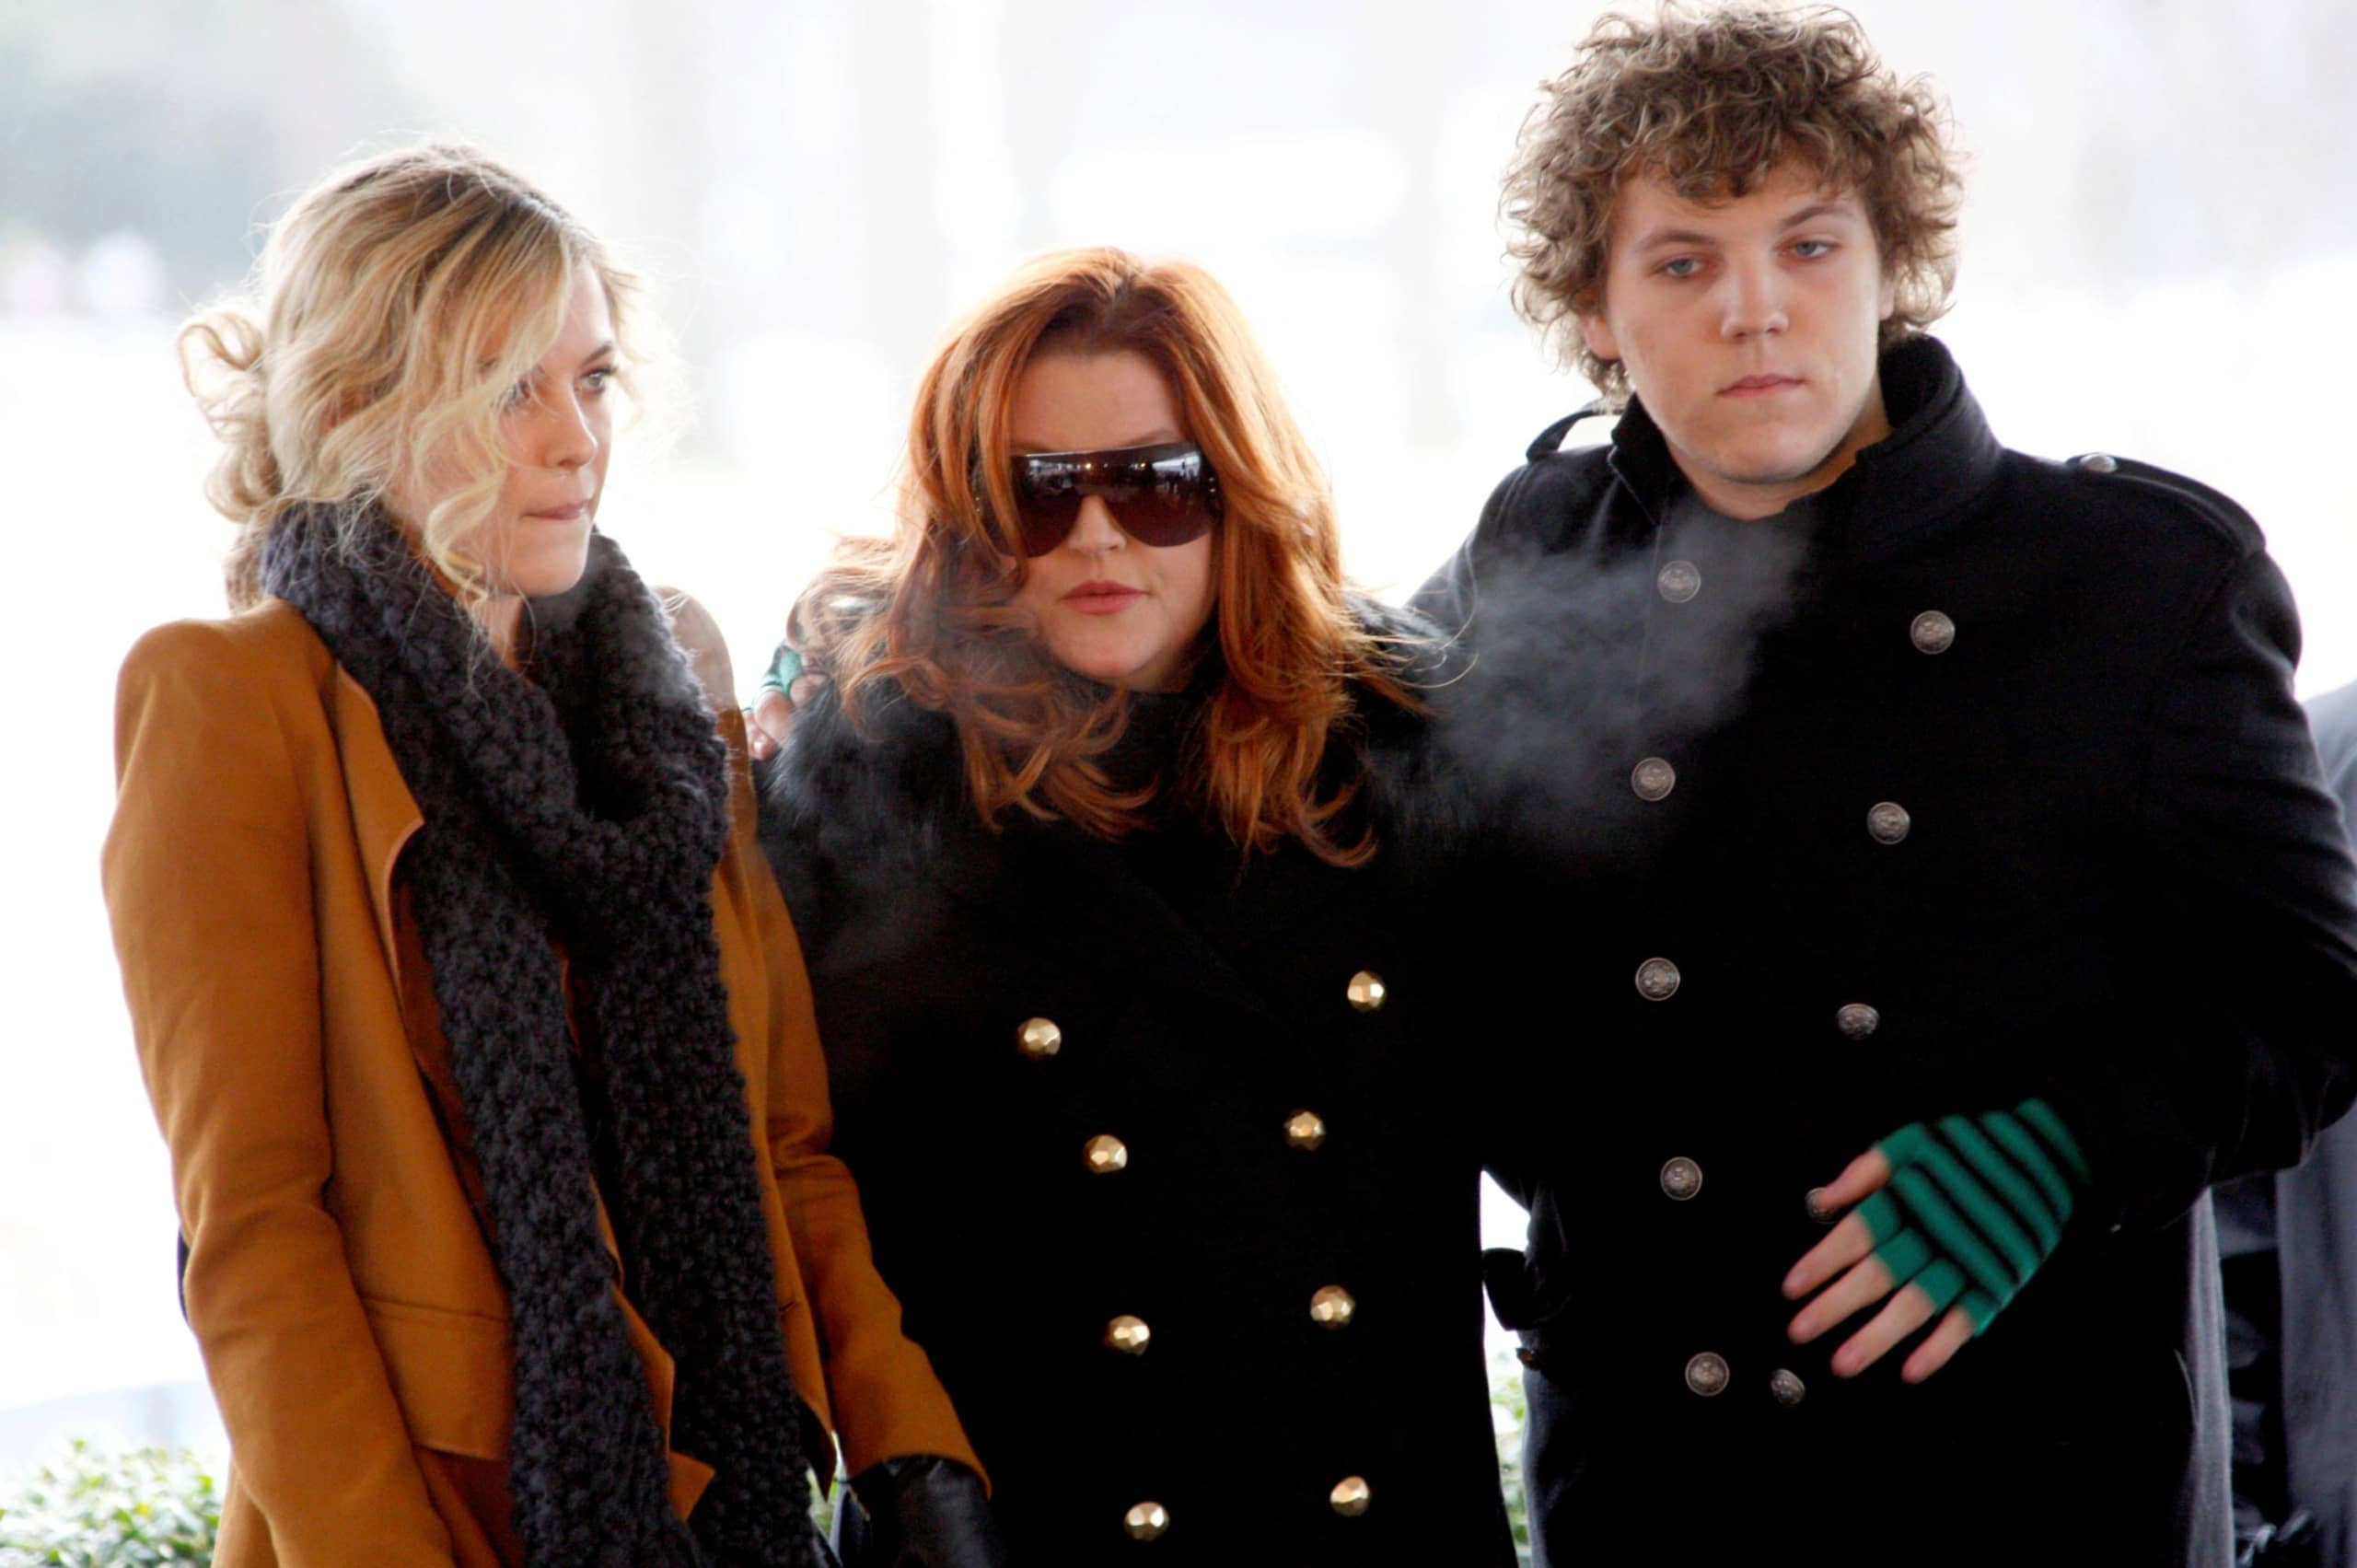 Lisa Marie Presley, with her children Riley and Benjamin Keough (right), attend the 75th birthday celebration for Elvis Presley in Memphis, Tennessee, on Jan. 8, 2010.   | REUTERS